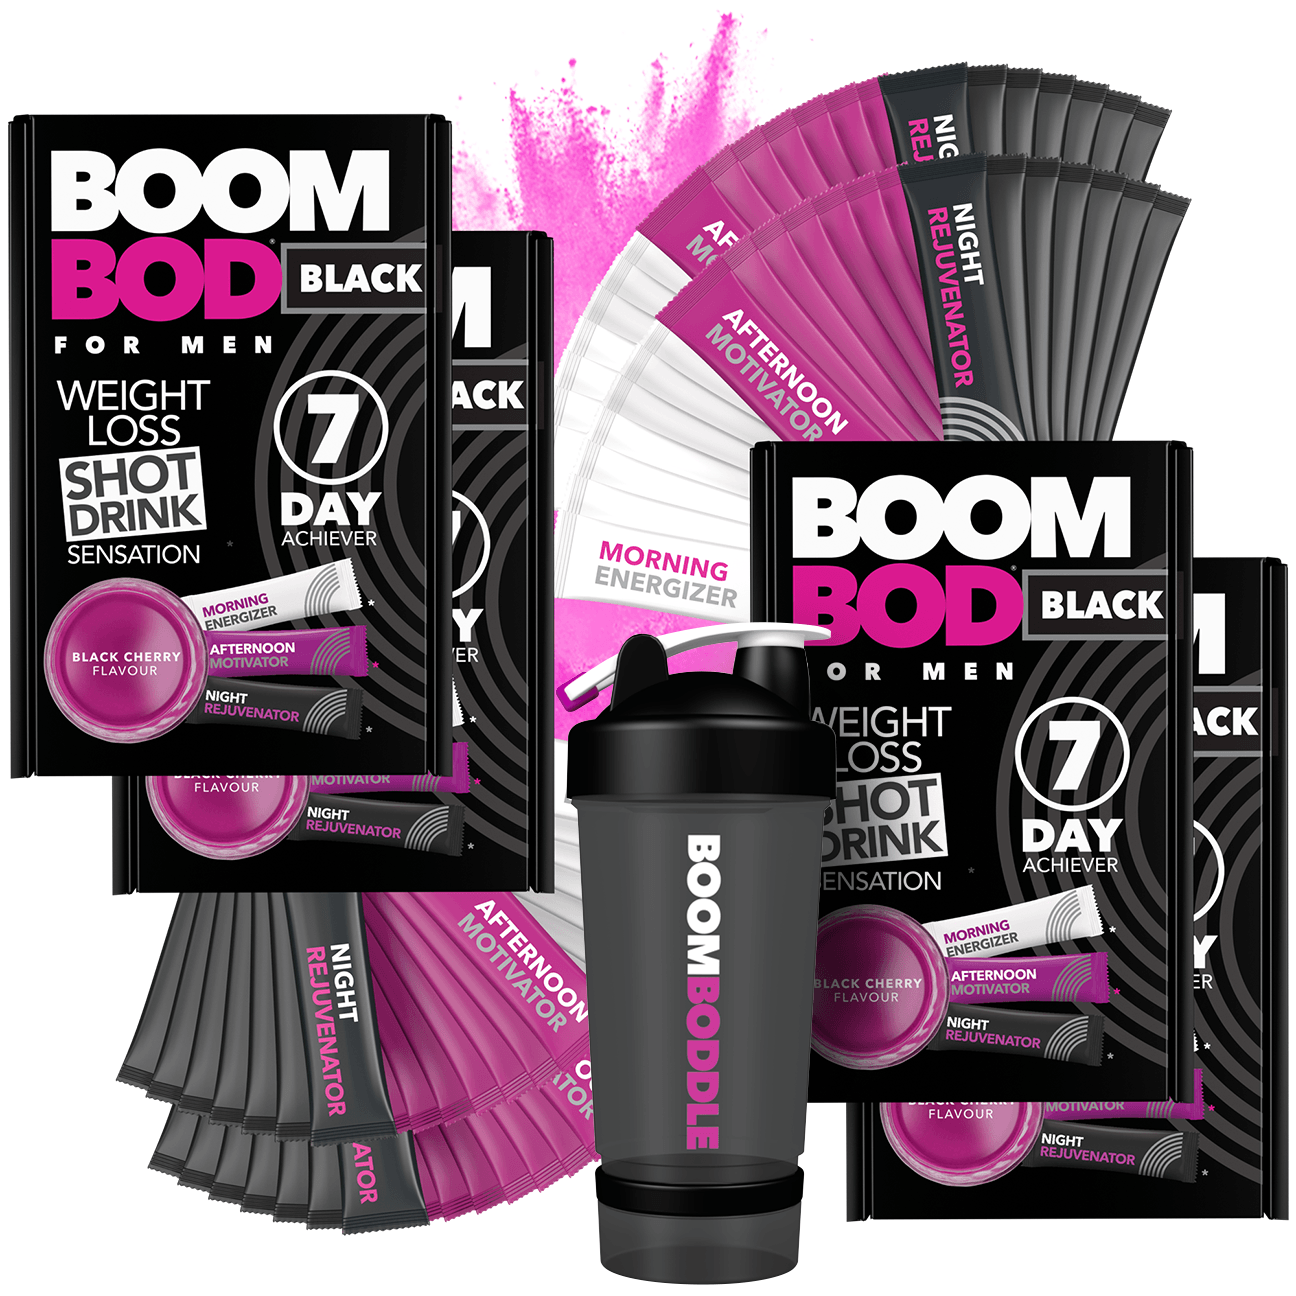 Boombod 28 Day Achiever Men's with Black 20oz Shaker Bottle | Black Cherry | Weight Loss Shot Drink